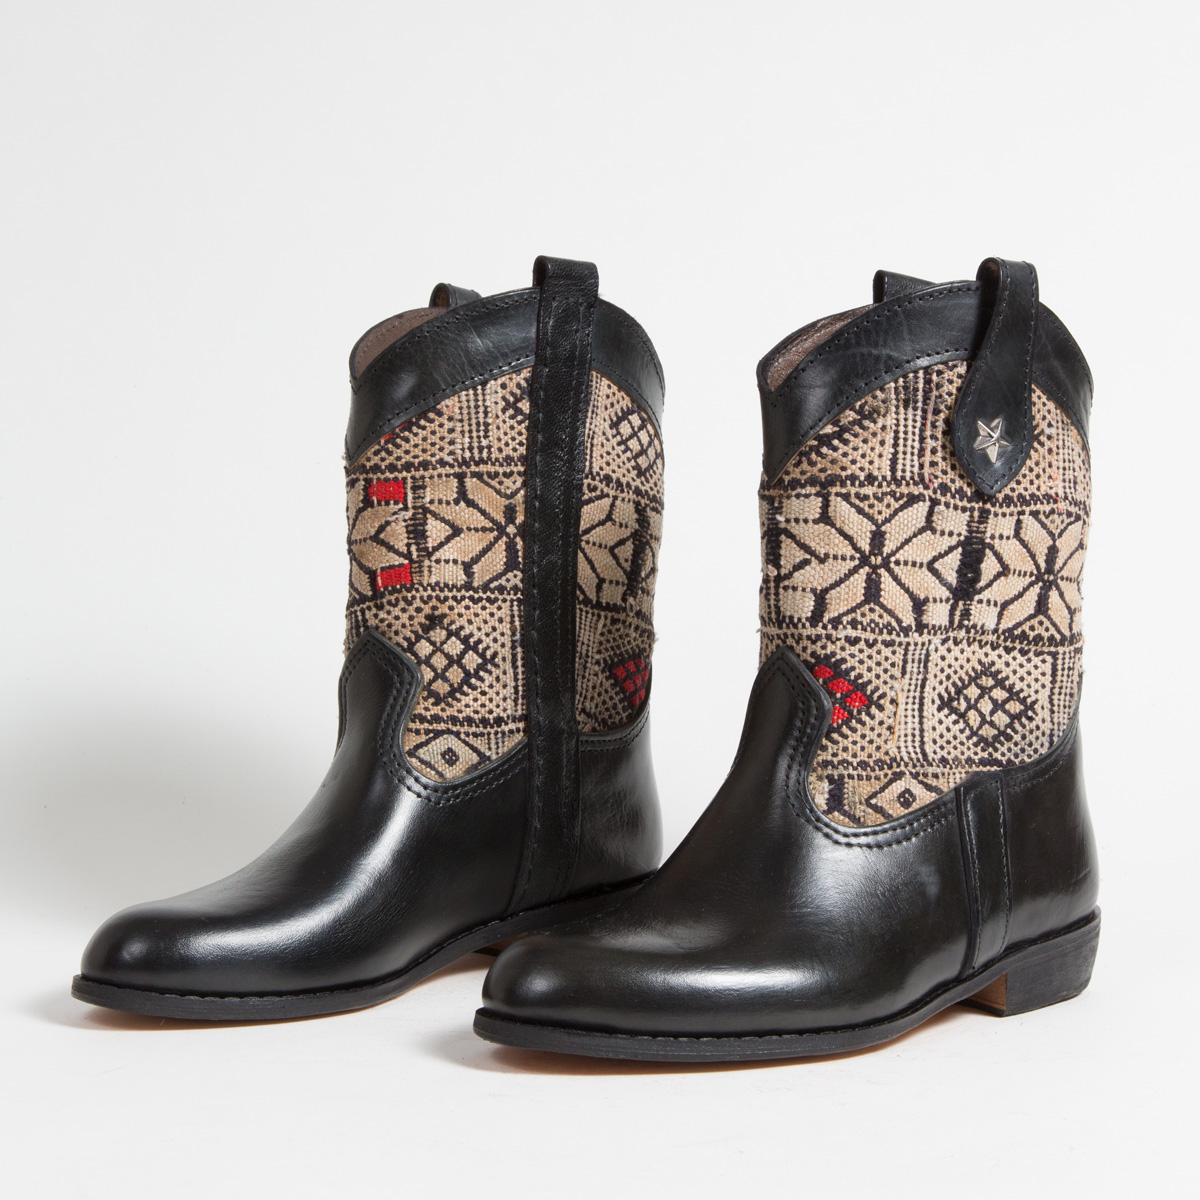 Bottines Kilim cuir mababouche artisanales (Réf. MN4-38)